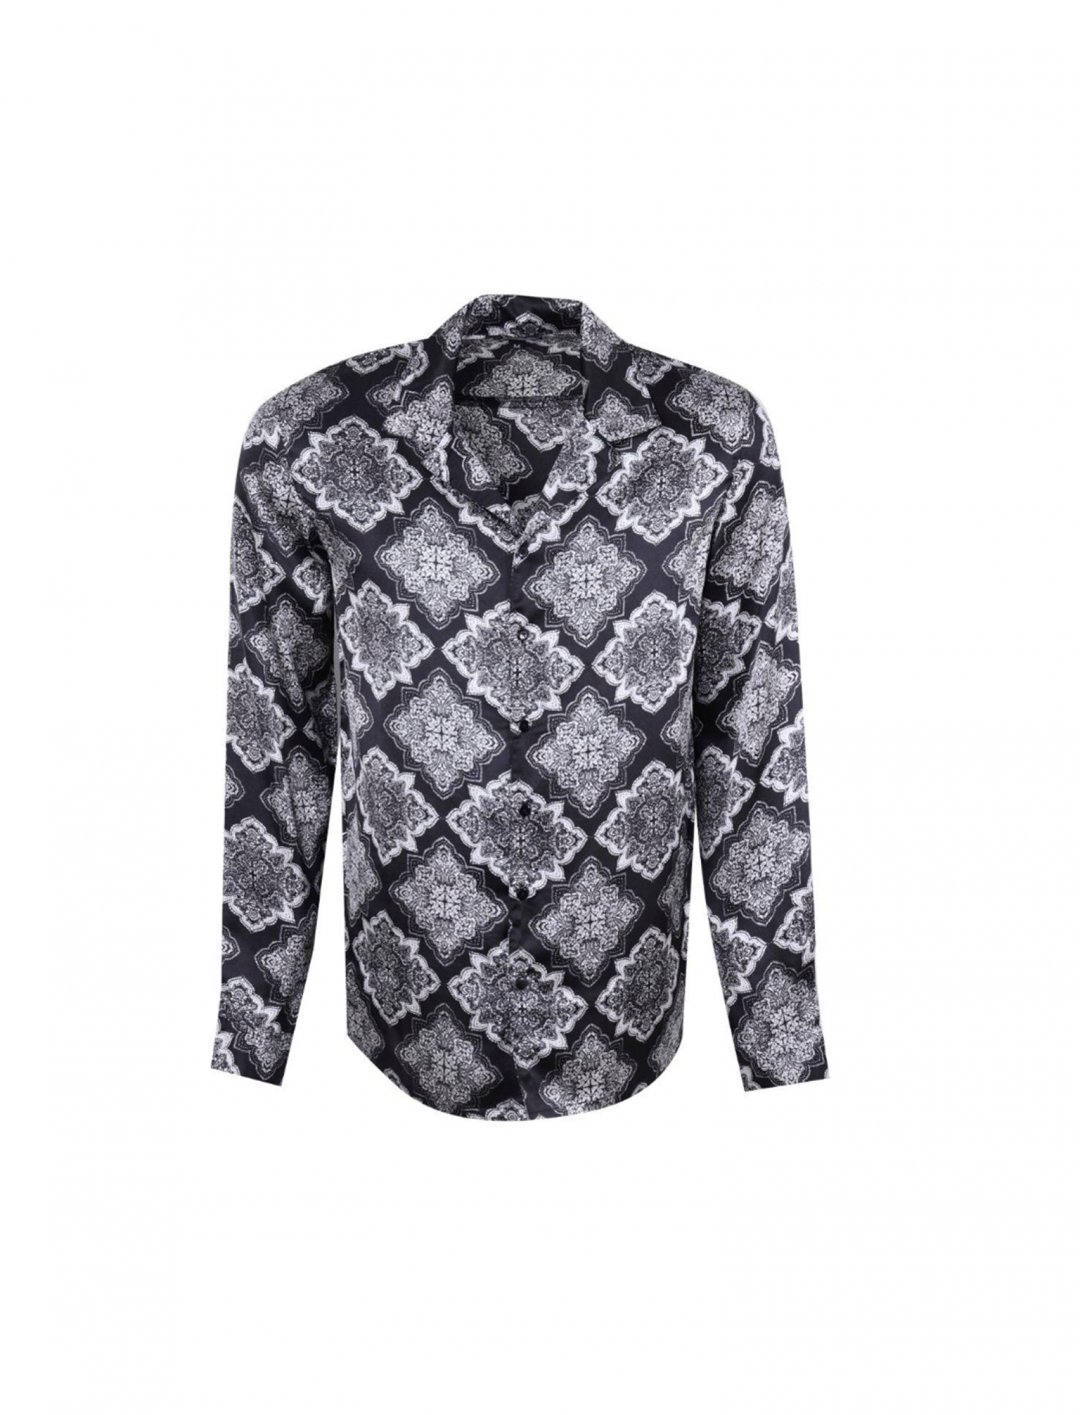 "Lotto Boyzz' Mandala Print Shirt {""id"":5,""product_section_id"":1,""name"":""Clothing"",""order"":5} boohoo"